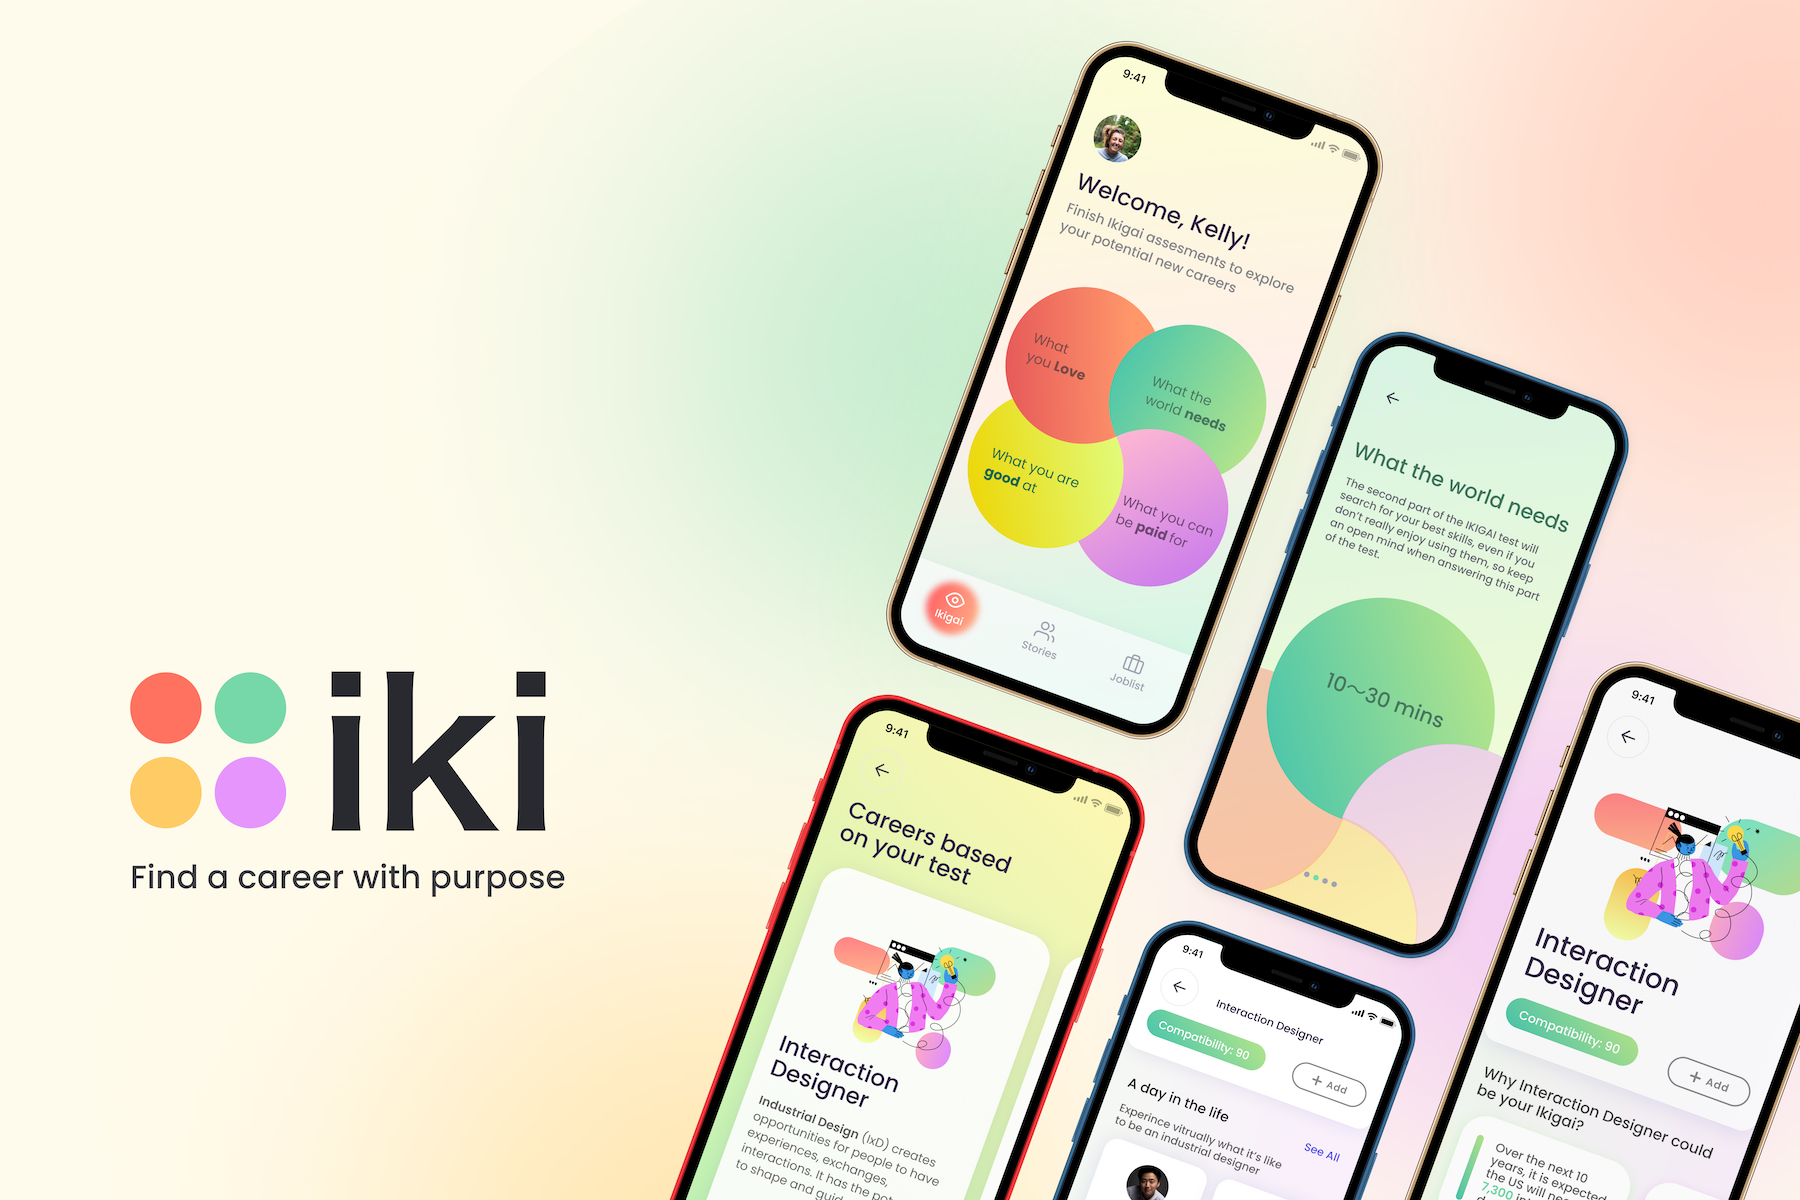 iki iki is a platform that helps people find fulfillment in their careers.